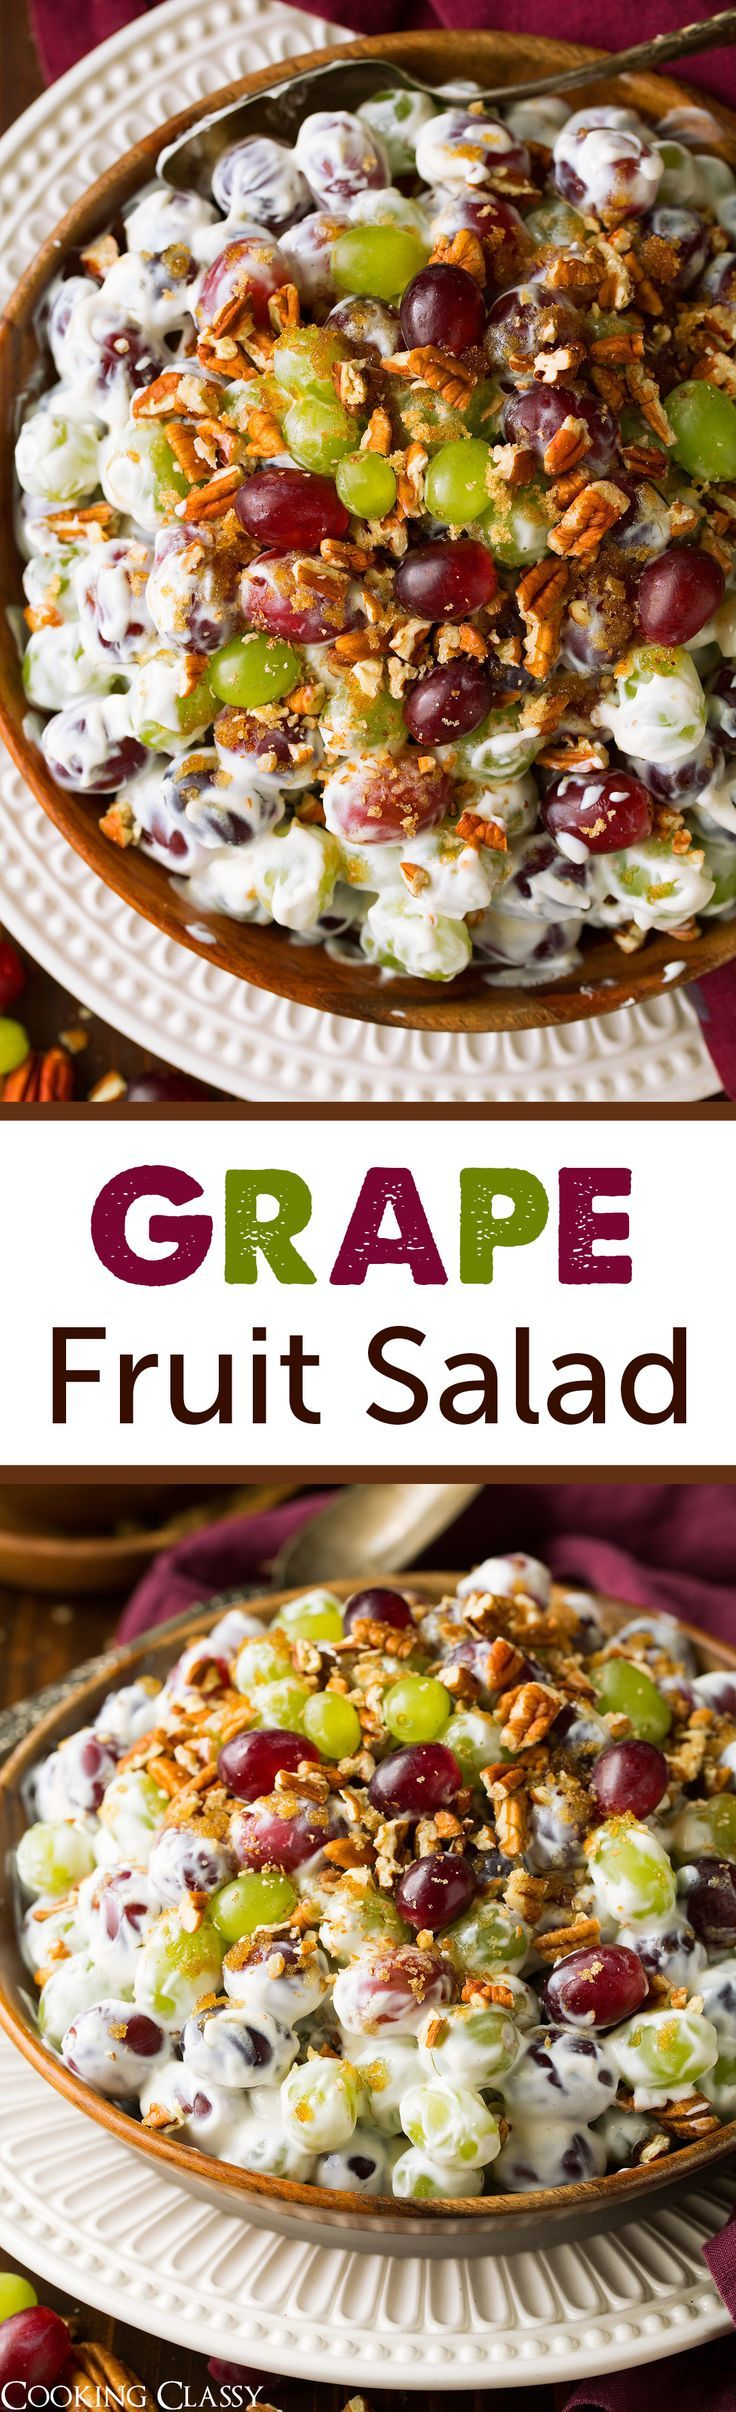 Creamy Grape Fruit Salad - Cooking Classy